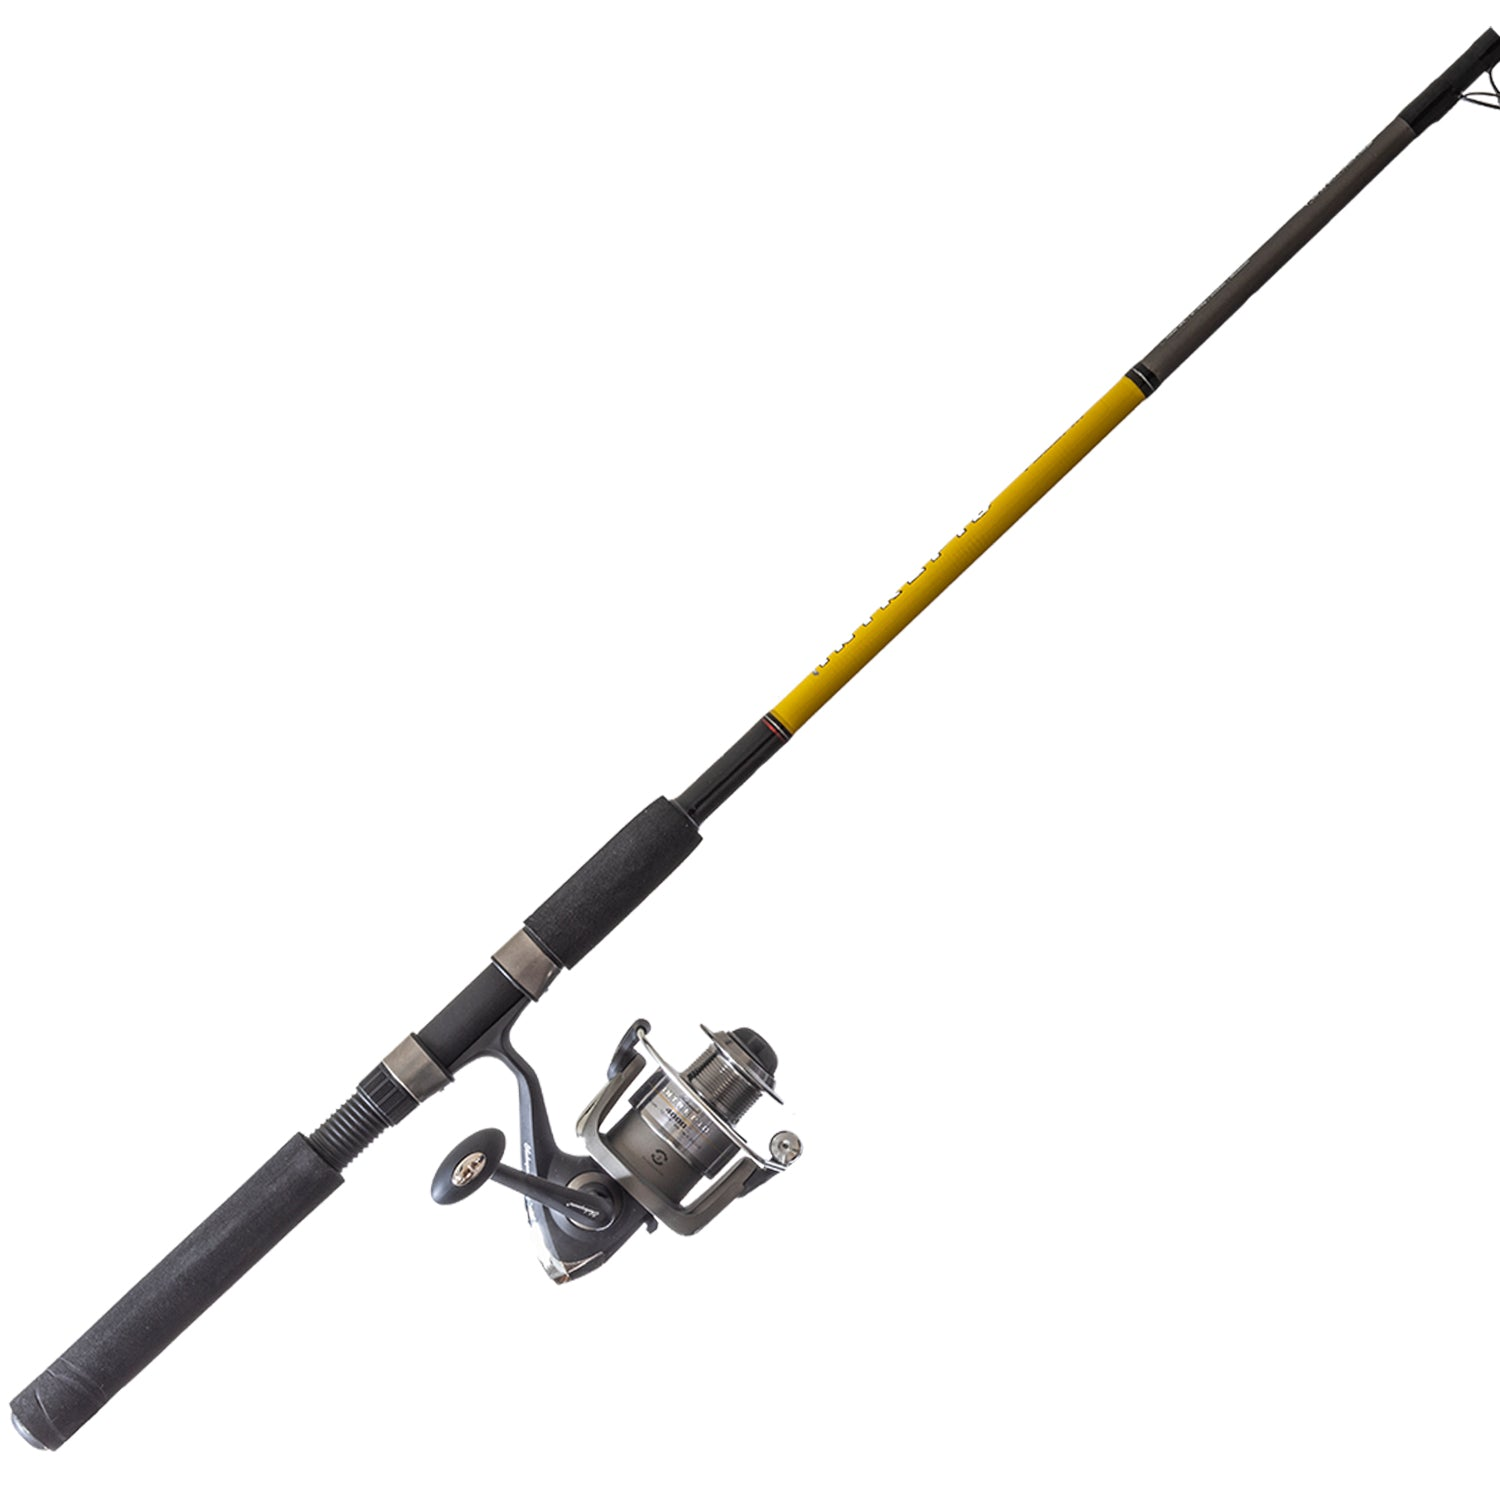 Shakespeare Intrepid Fishing Spin Rod and Reel Combo